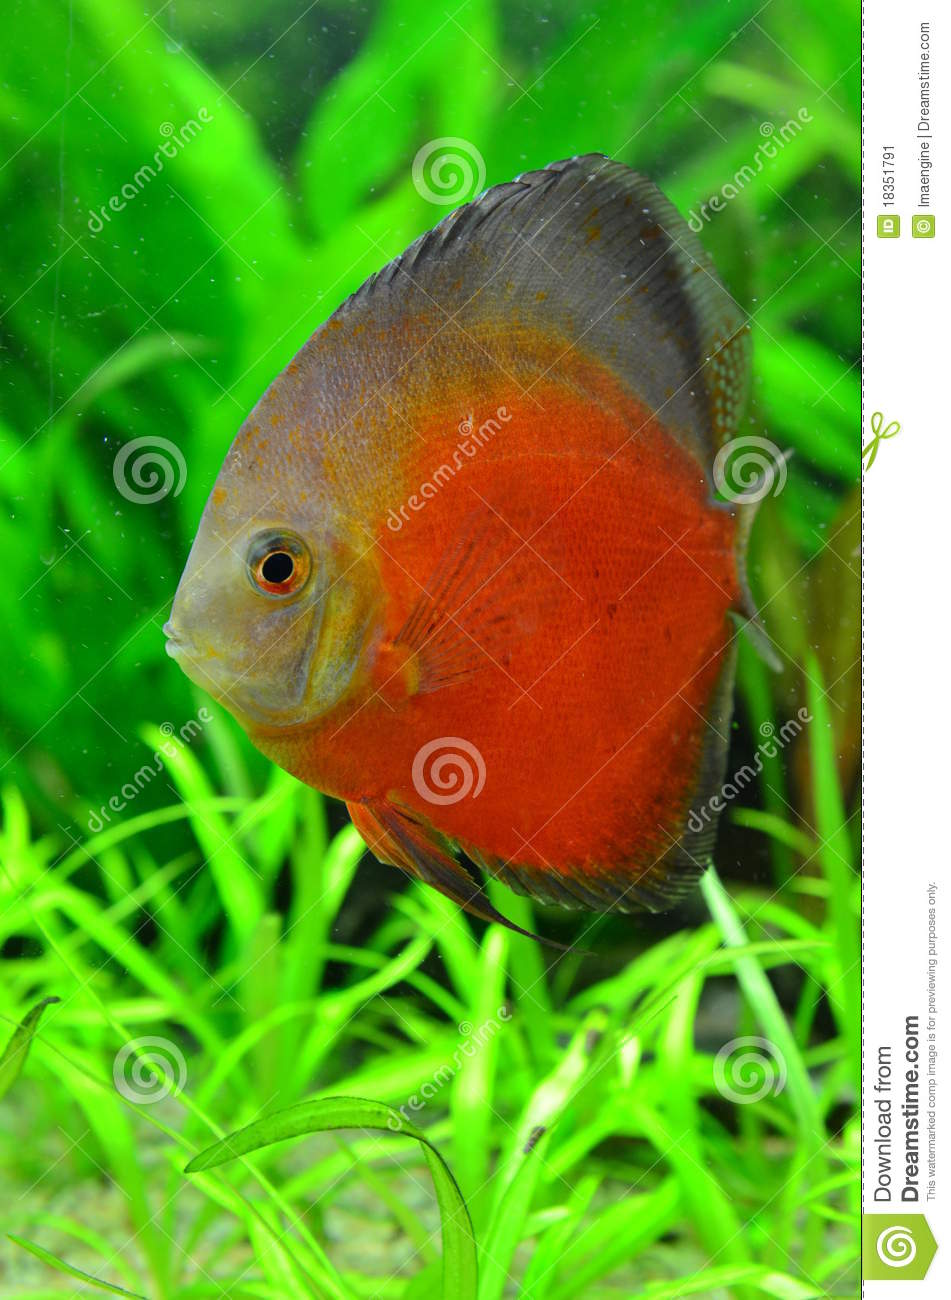 White Face Melon Discus Fish Stock Image - Image of cichlids, color ...